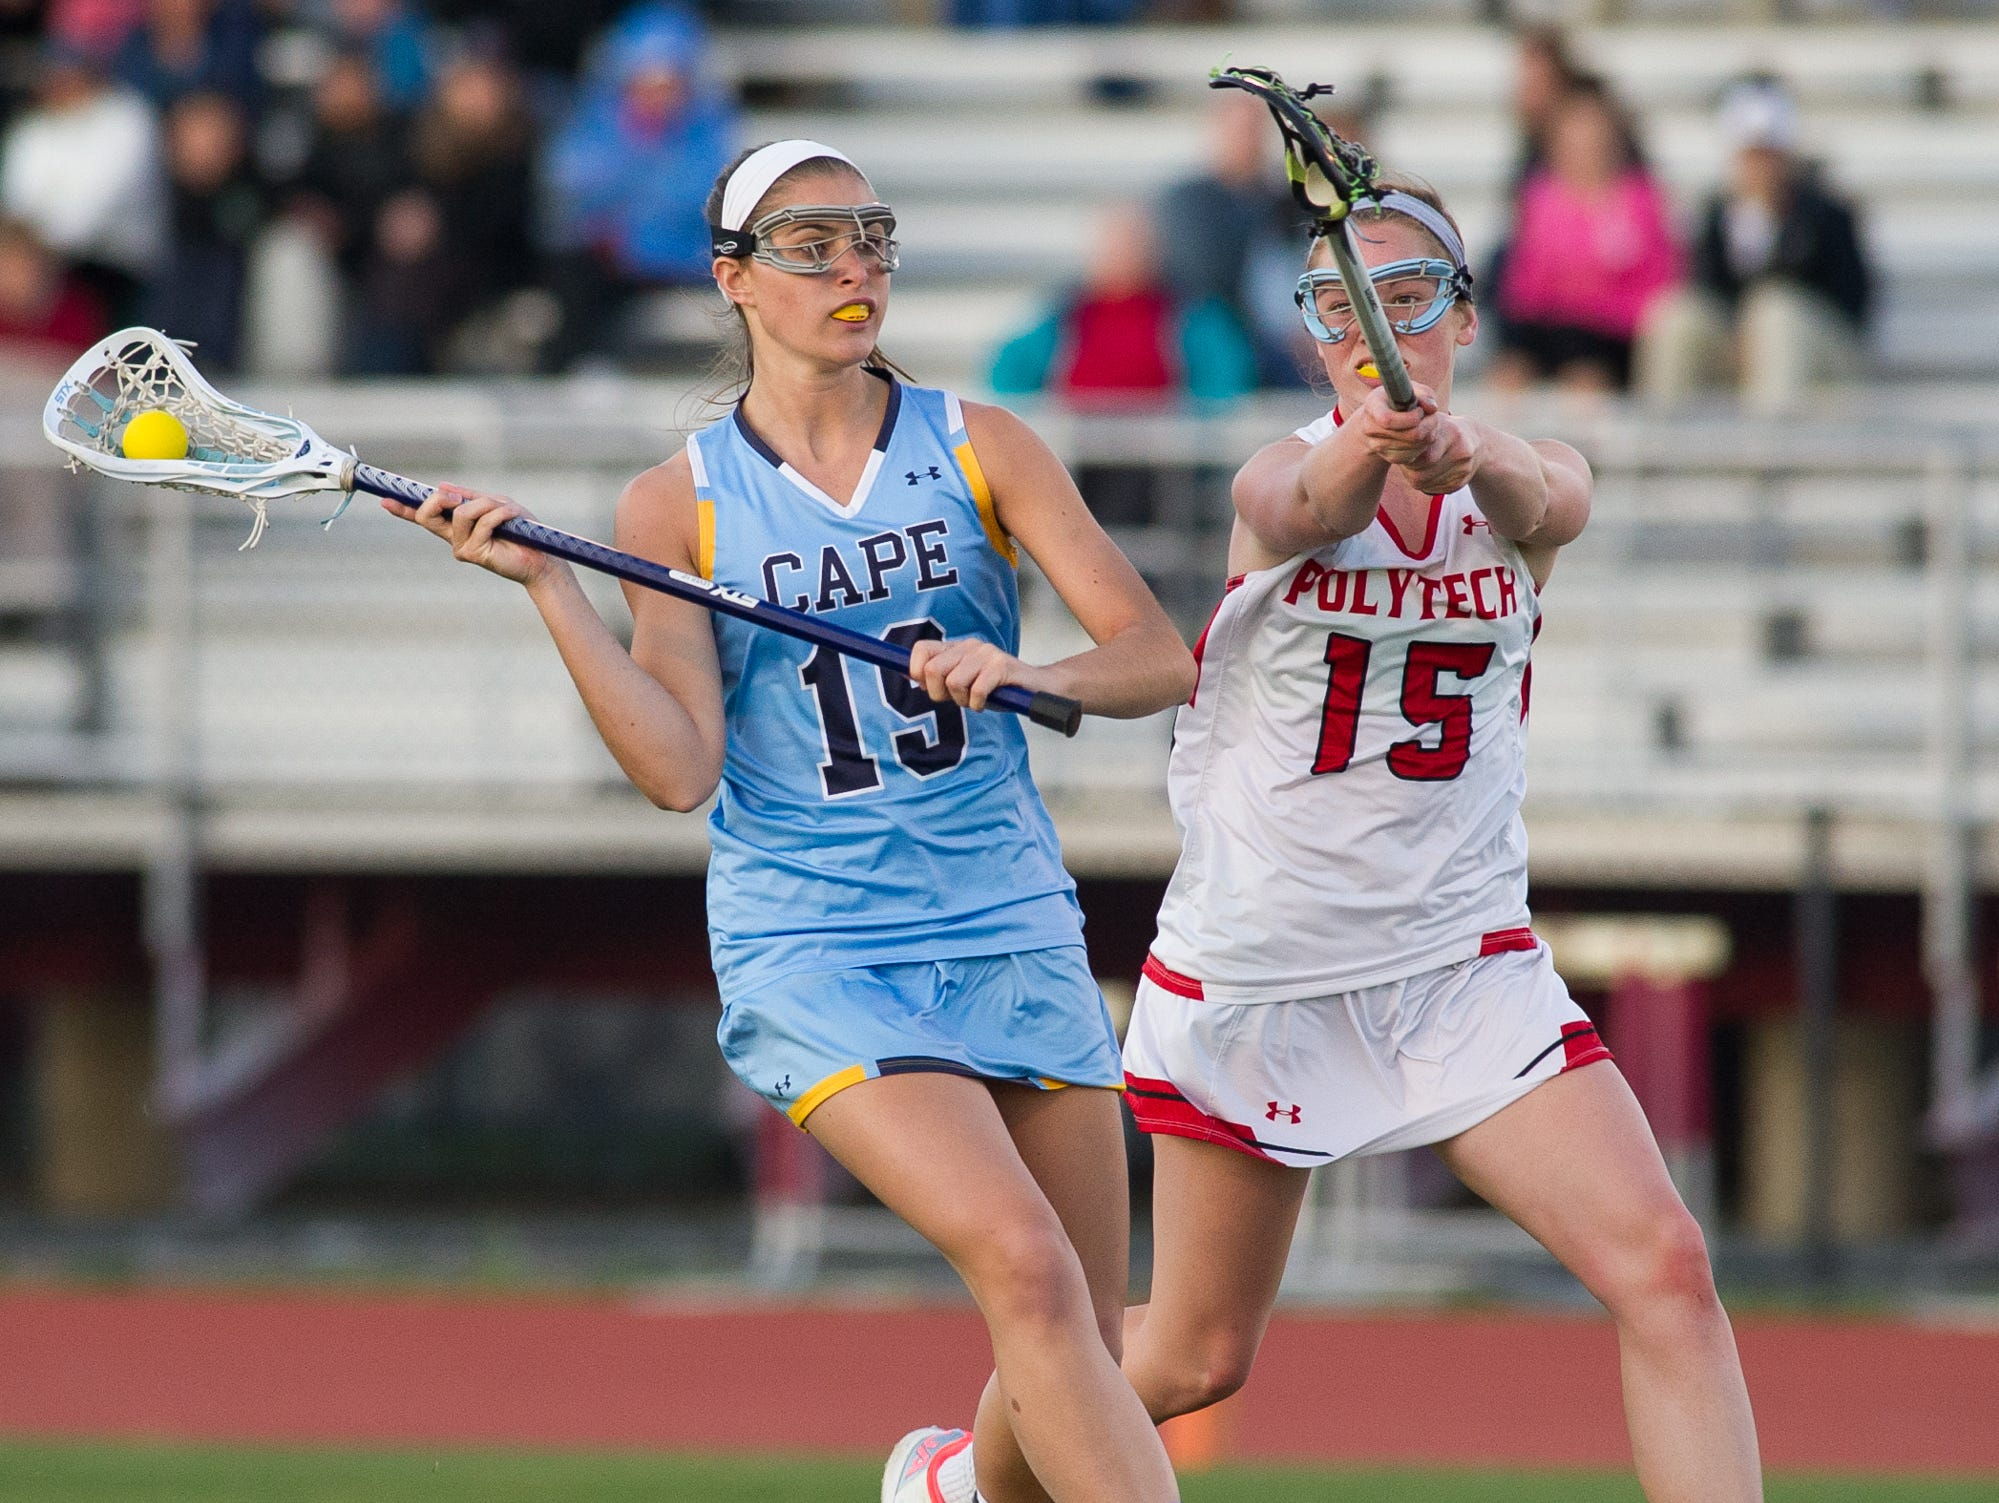 Polytech's Grace Stang (15), right tries to stop a shot from Cape Henlopen's Alison Palmer (19).